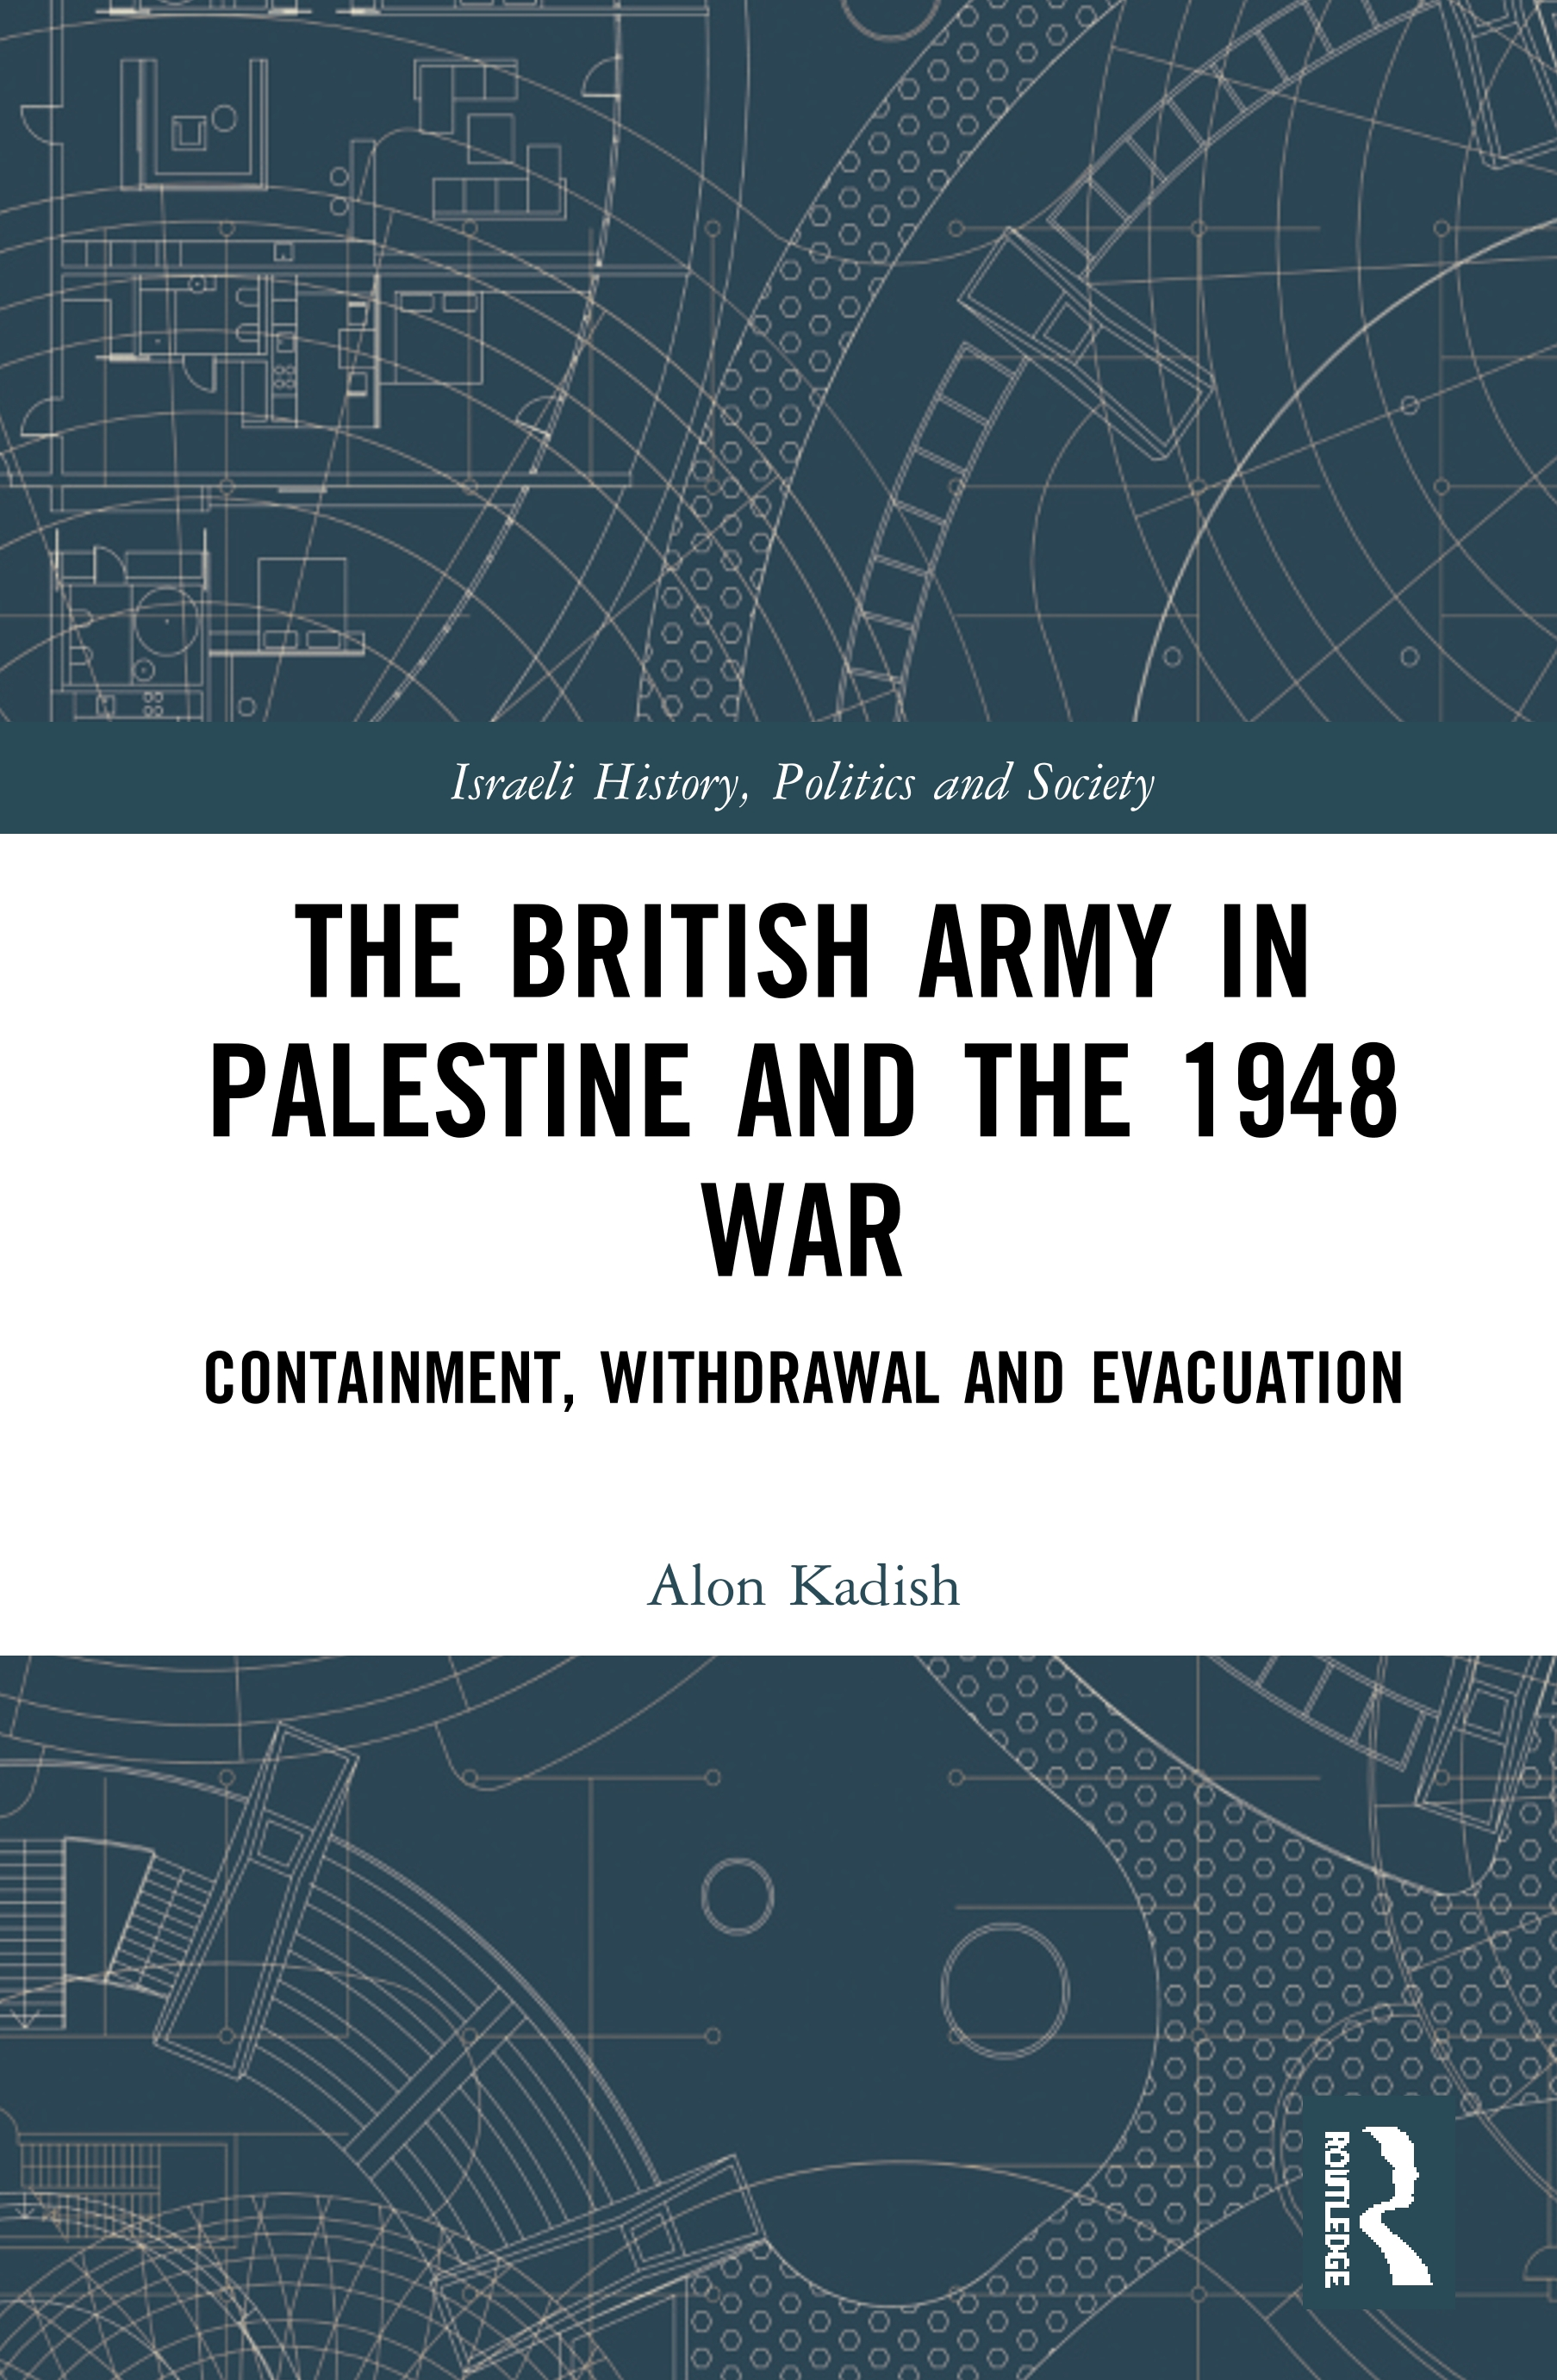 The British Army in Palestine and the 1948 War: Containment, Withdrawal and Evacuation book cover